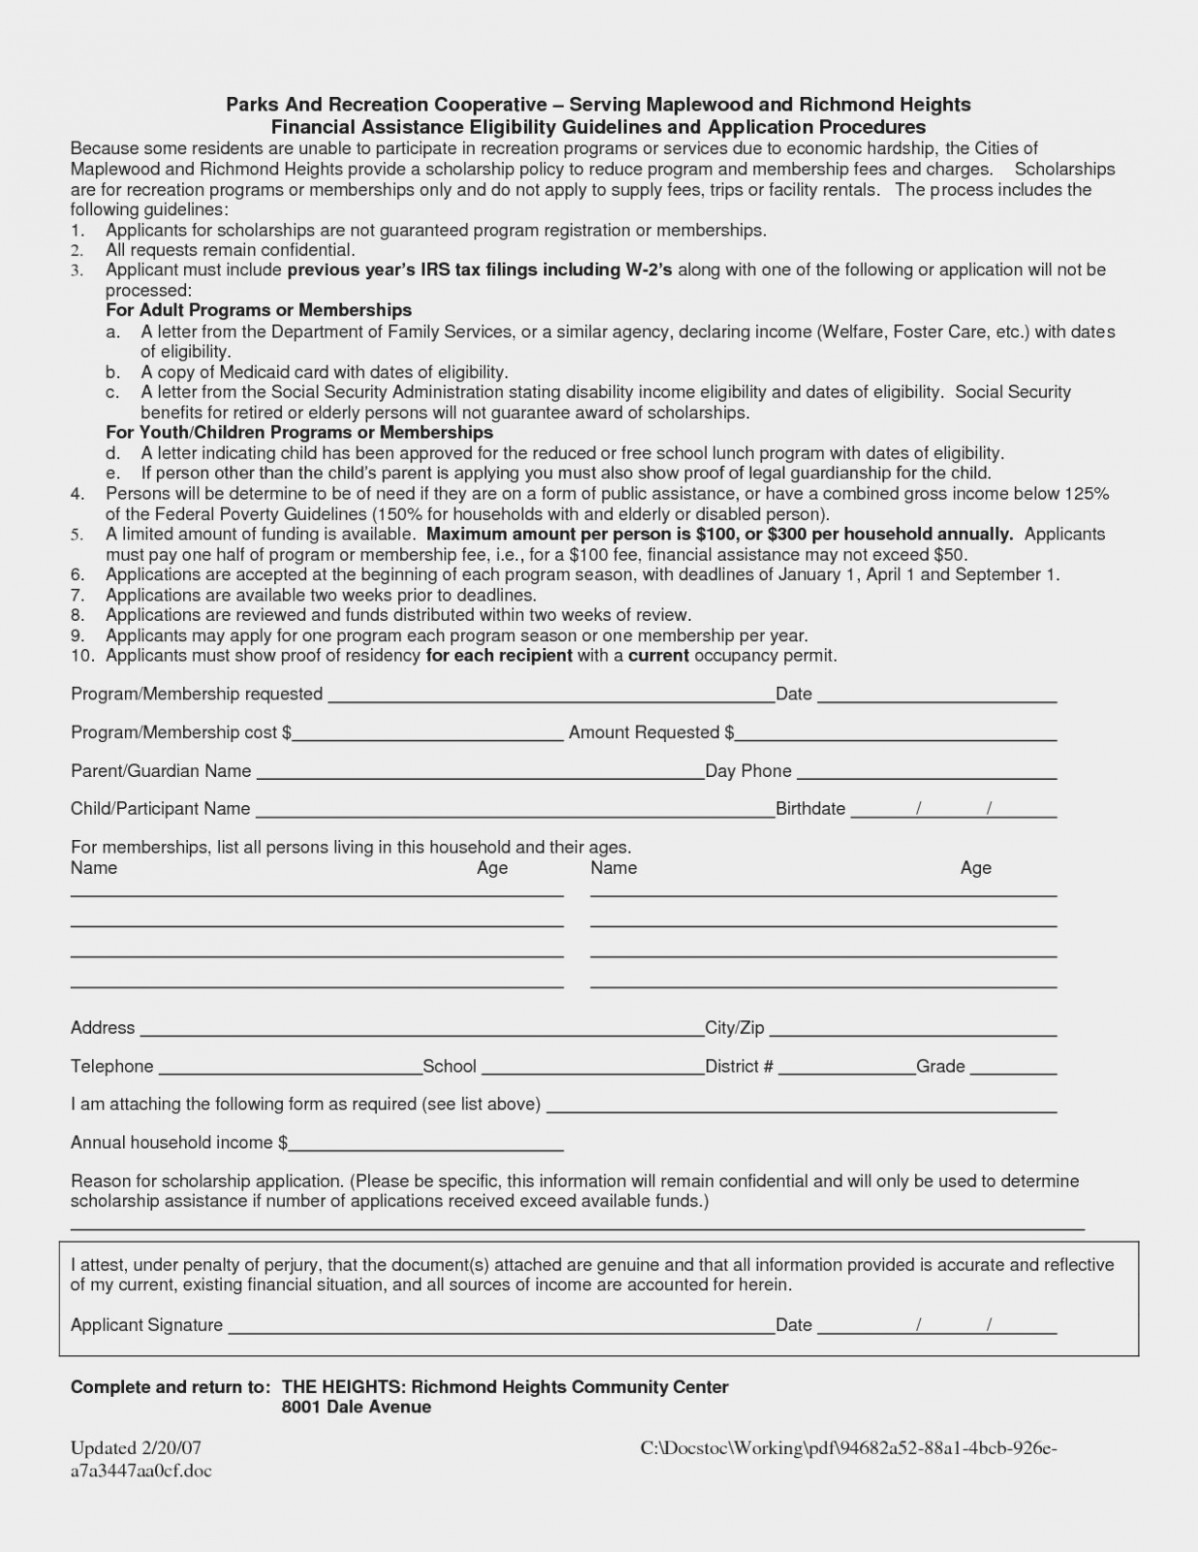 Free Printable Legal Guardianship Forms | Aboutplanning .. – The - Free Printable Legal Guardianship Forms